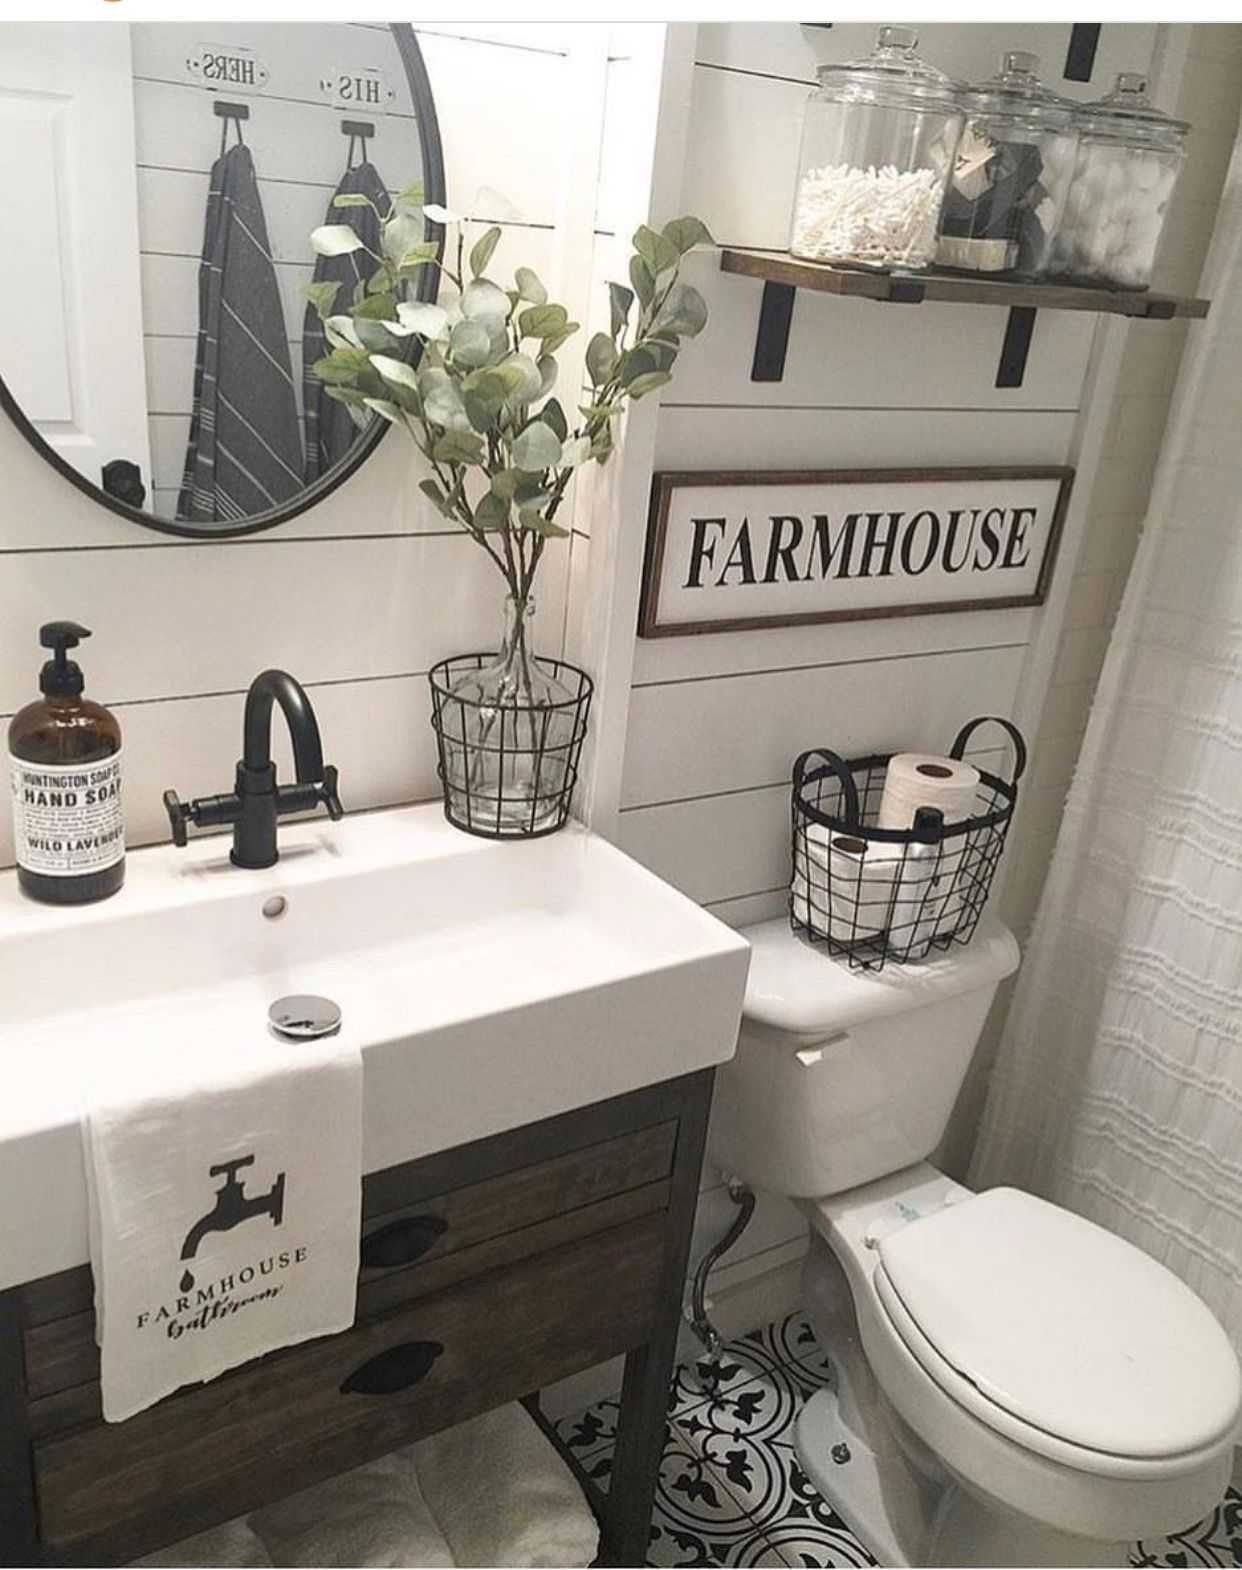 Farmhouse Powder Room Signs Unique Farmhouse Powder Room Signs